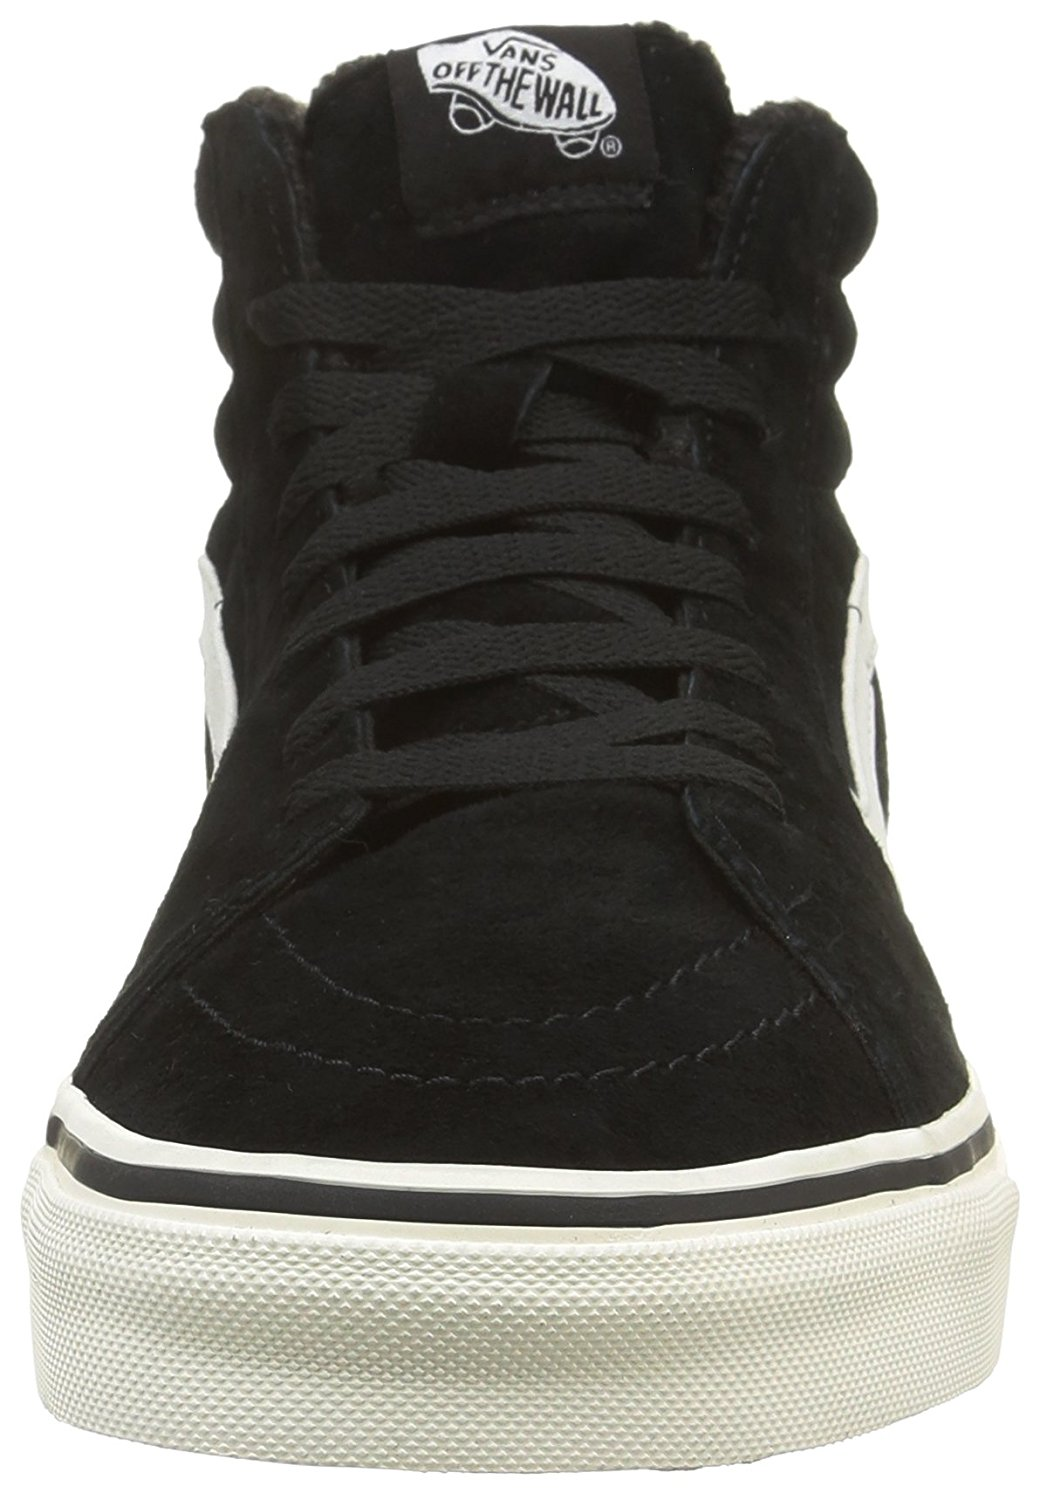 3c1cdf33785e0e Vans - Vans Sk8-Hi Pig Suede And Fleece Black   Blanc Ankle-High Skateboarding  Shoe - 12M 10.5M - Walmart.com